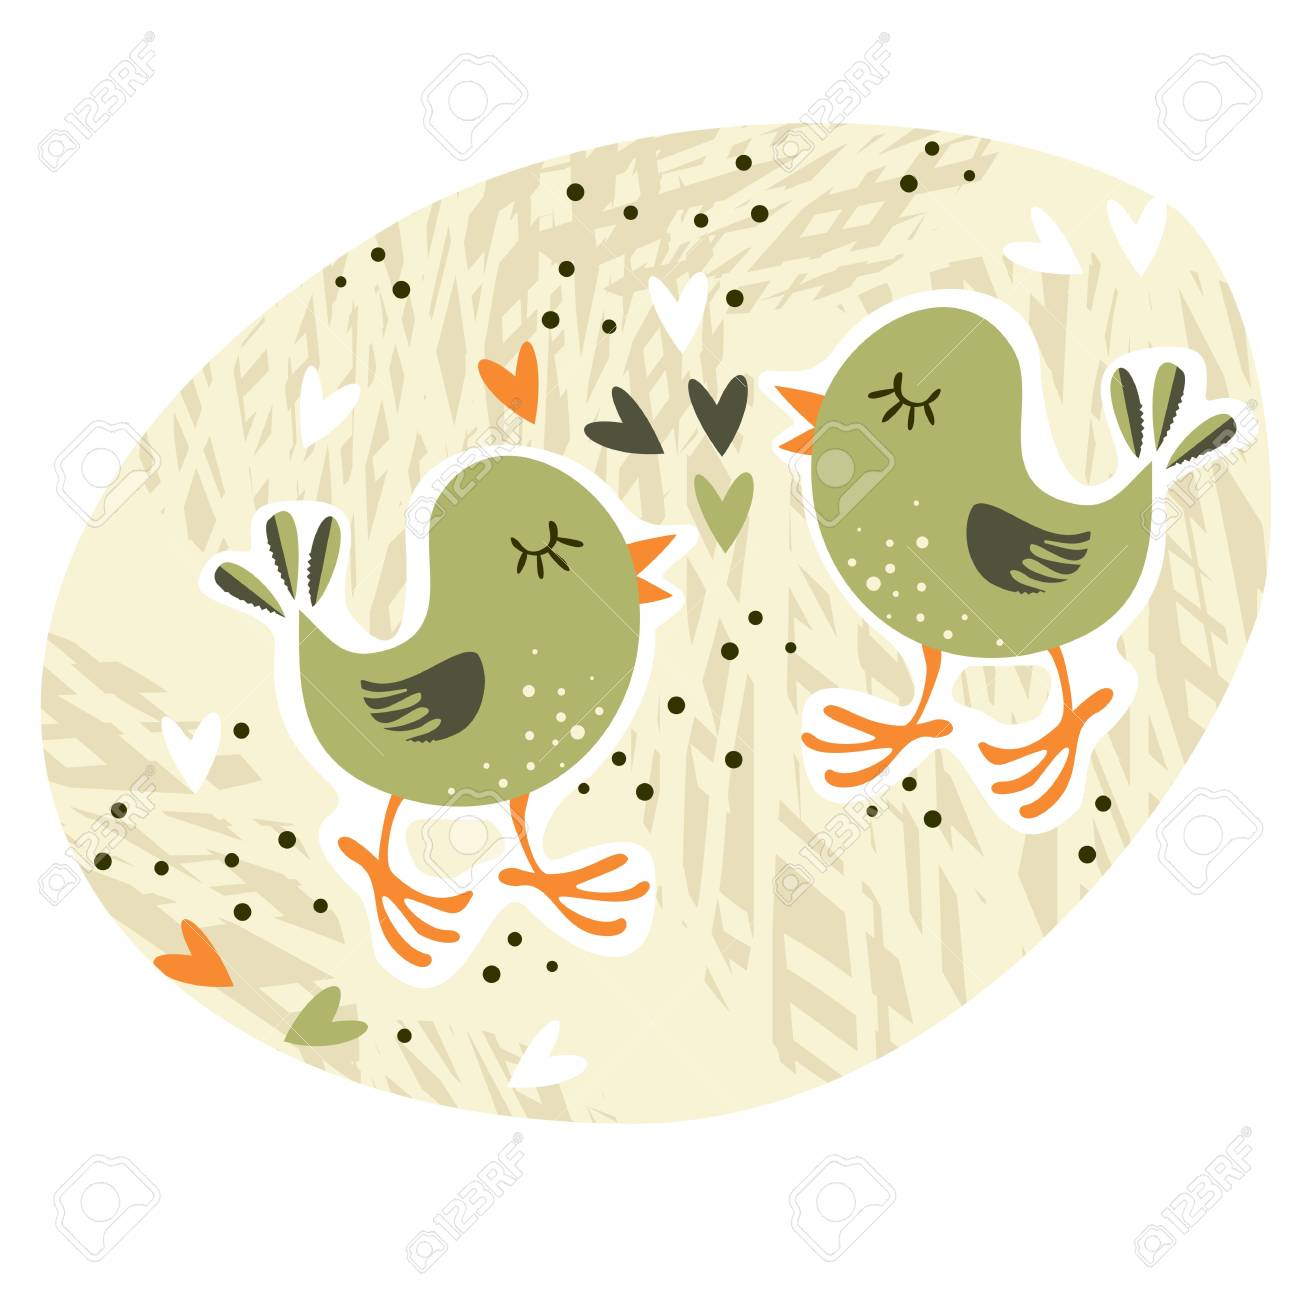 love card illustration with little birds and hearts centerpiece Stock Vector - 17128694